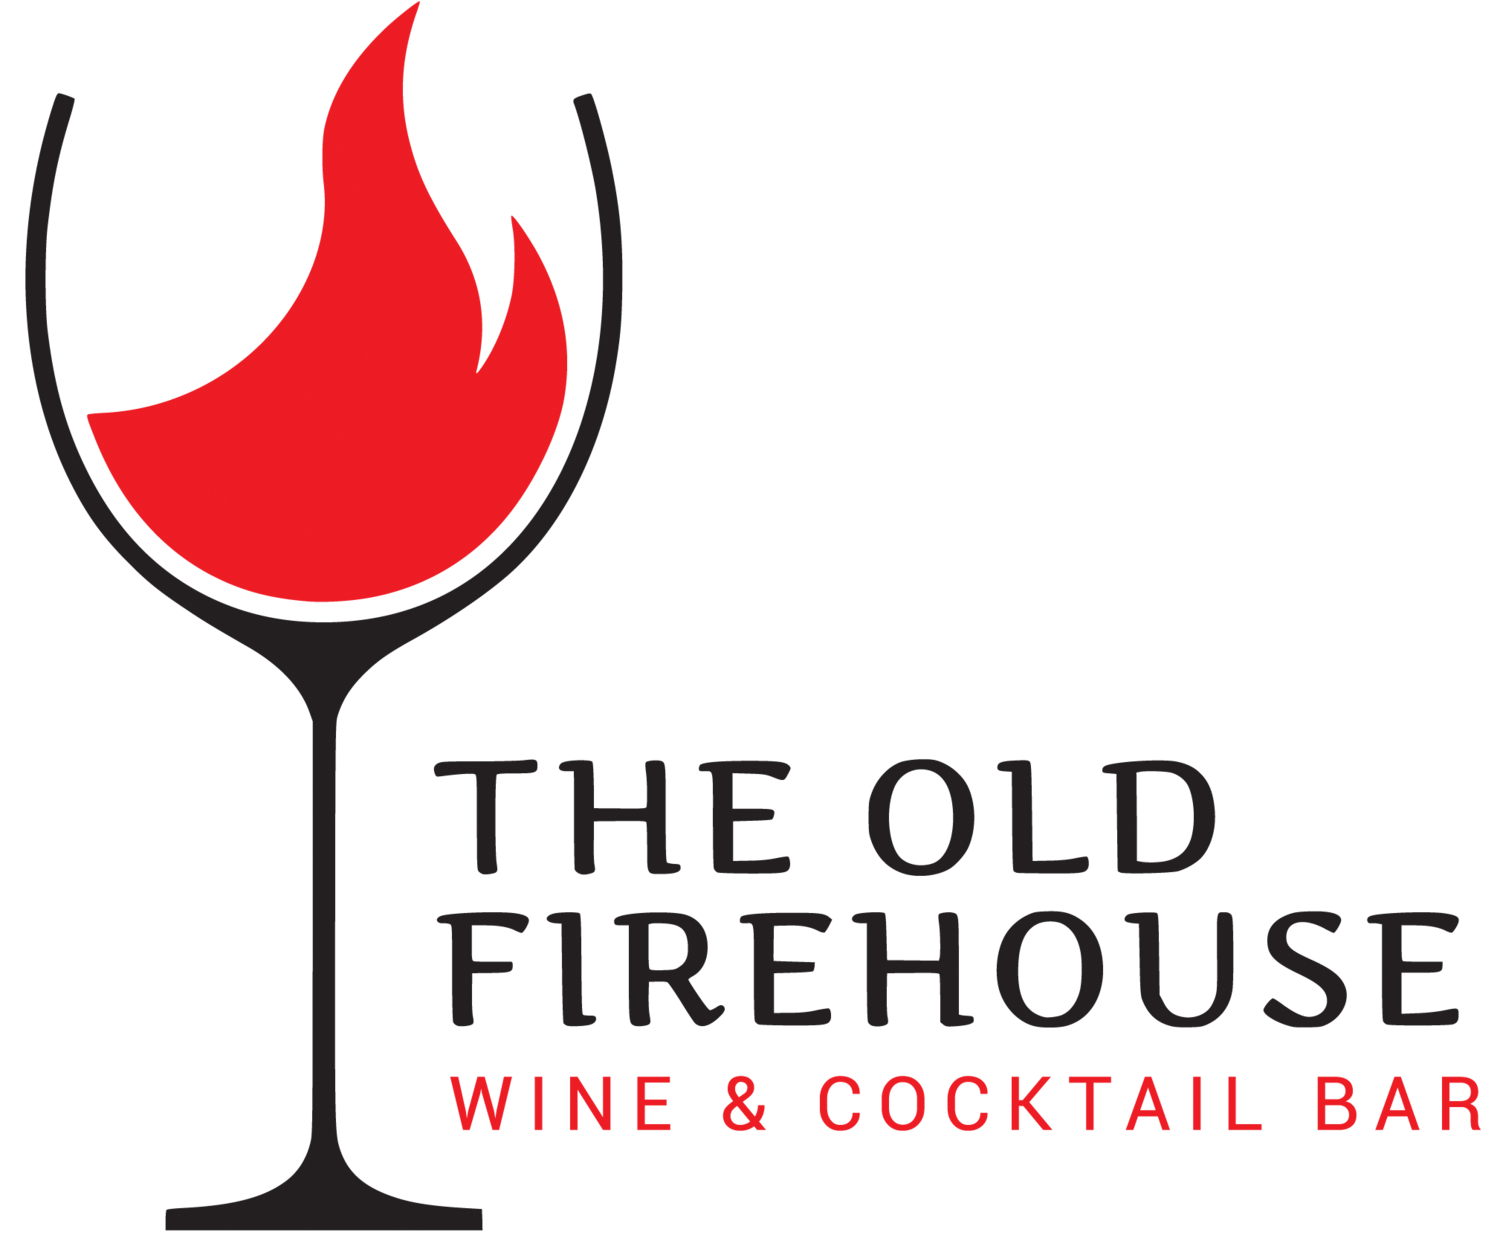 The Old Firehouse Wine & Cocktail Bar